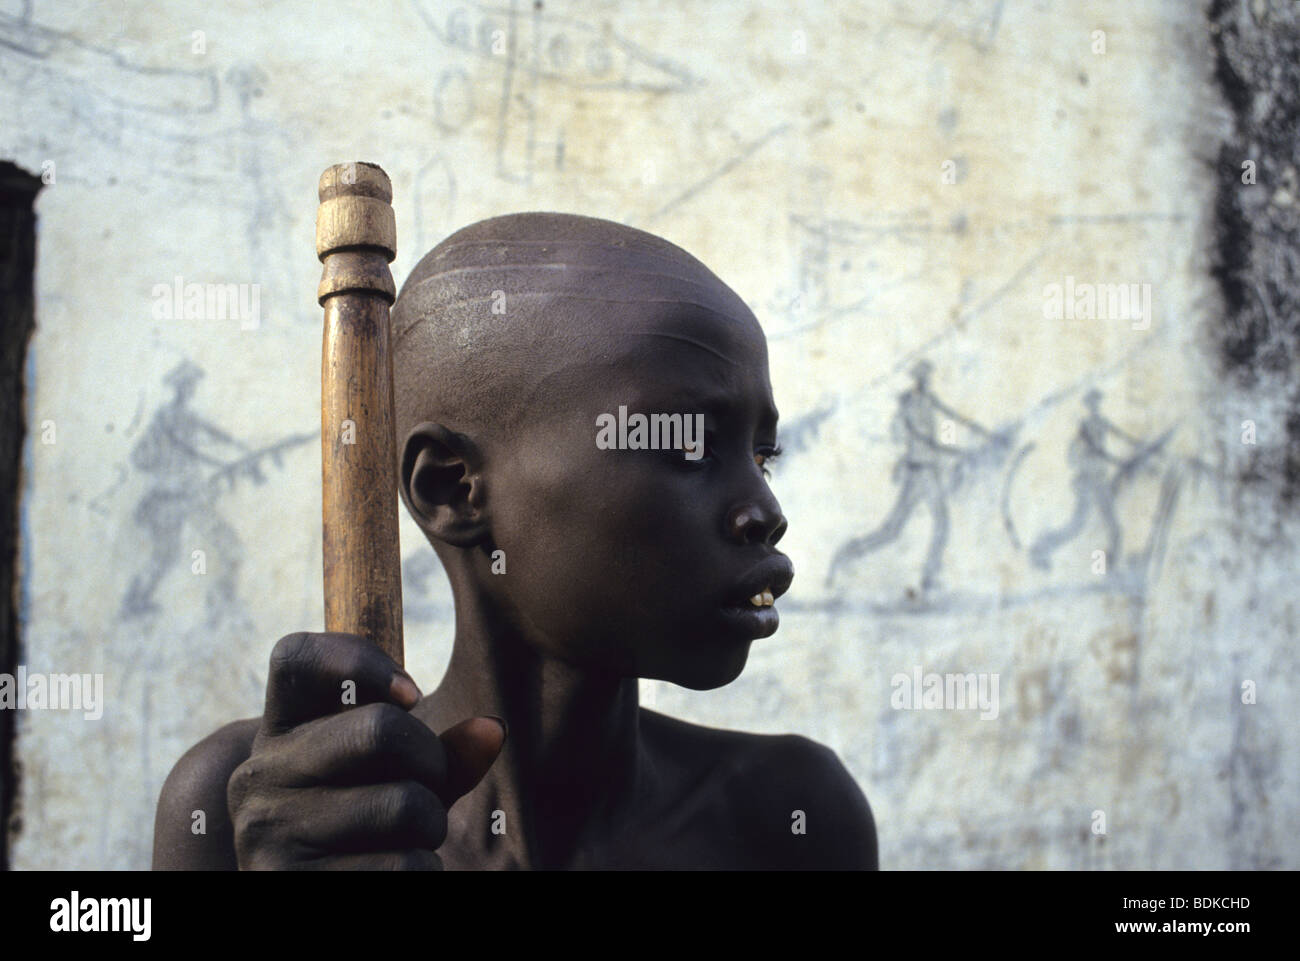 A Dinka boy barely able to stand due to starvation - Stock Image